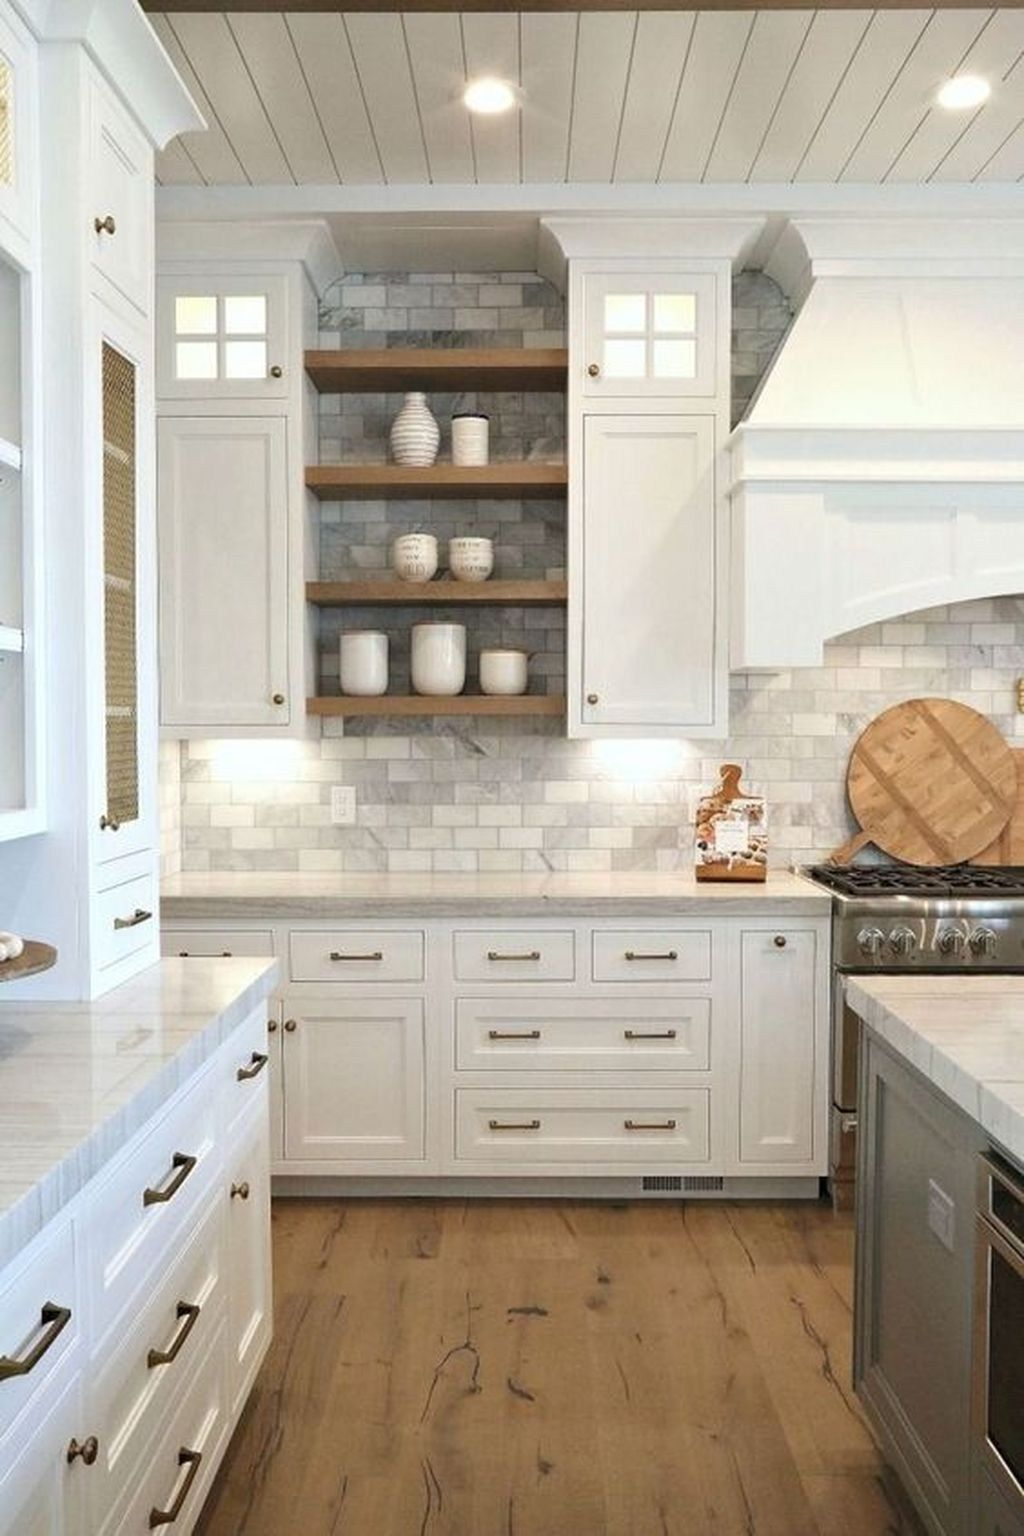 - 40 Popular Modern Farmhouse Kitchen Backsplash Ideas Kitchen